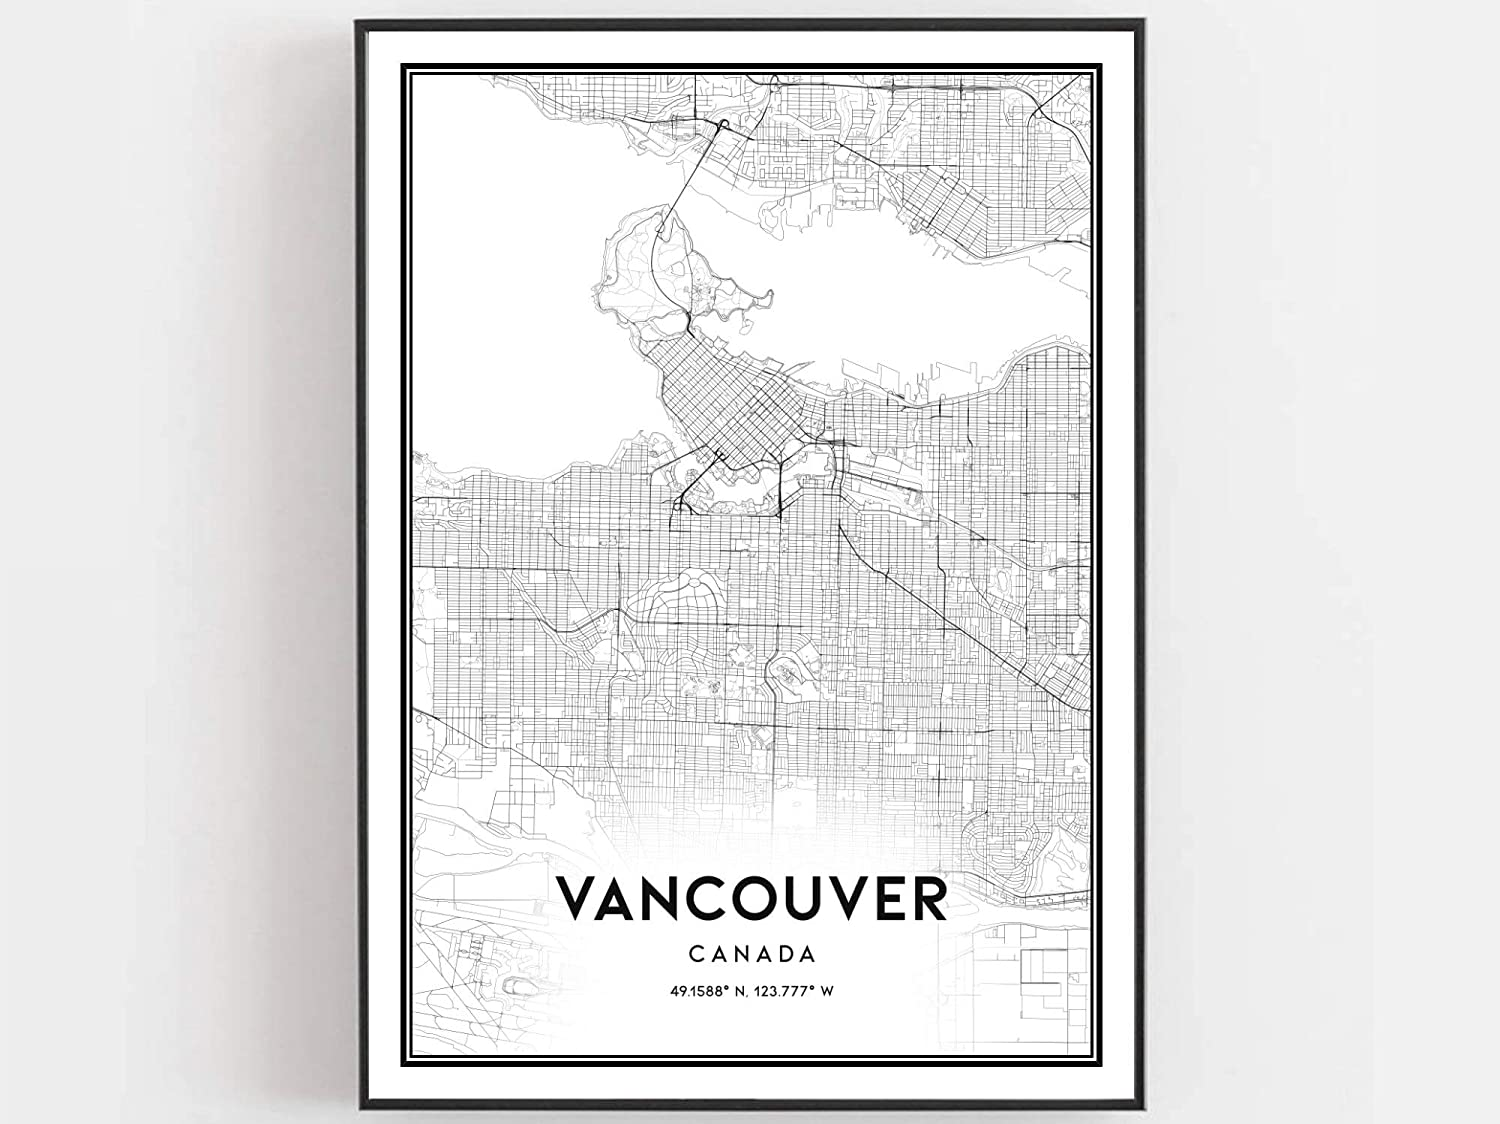 Vancouver Map Print Vancouver Map Poster Wall Art Vancouver City Map Vancouver Print Street Map Decor Road Map Gift